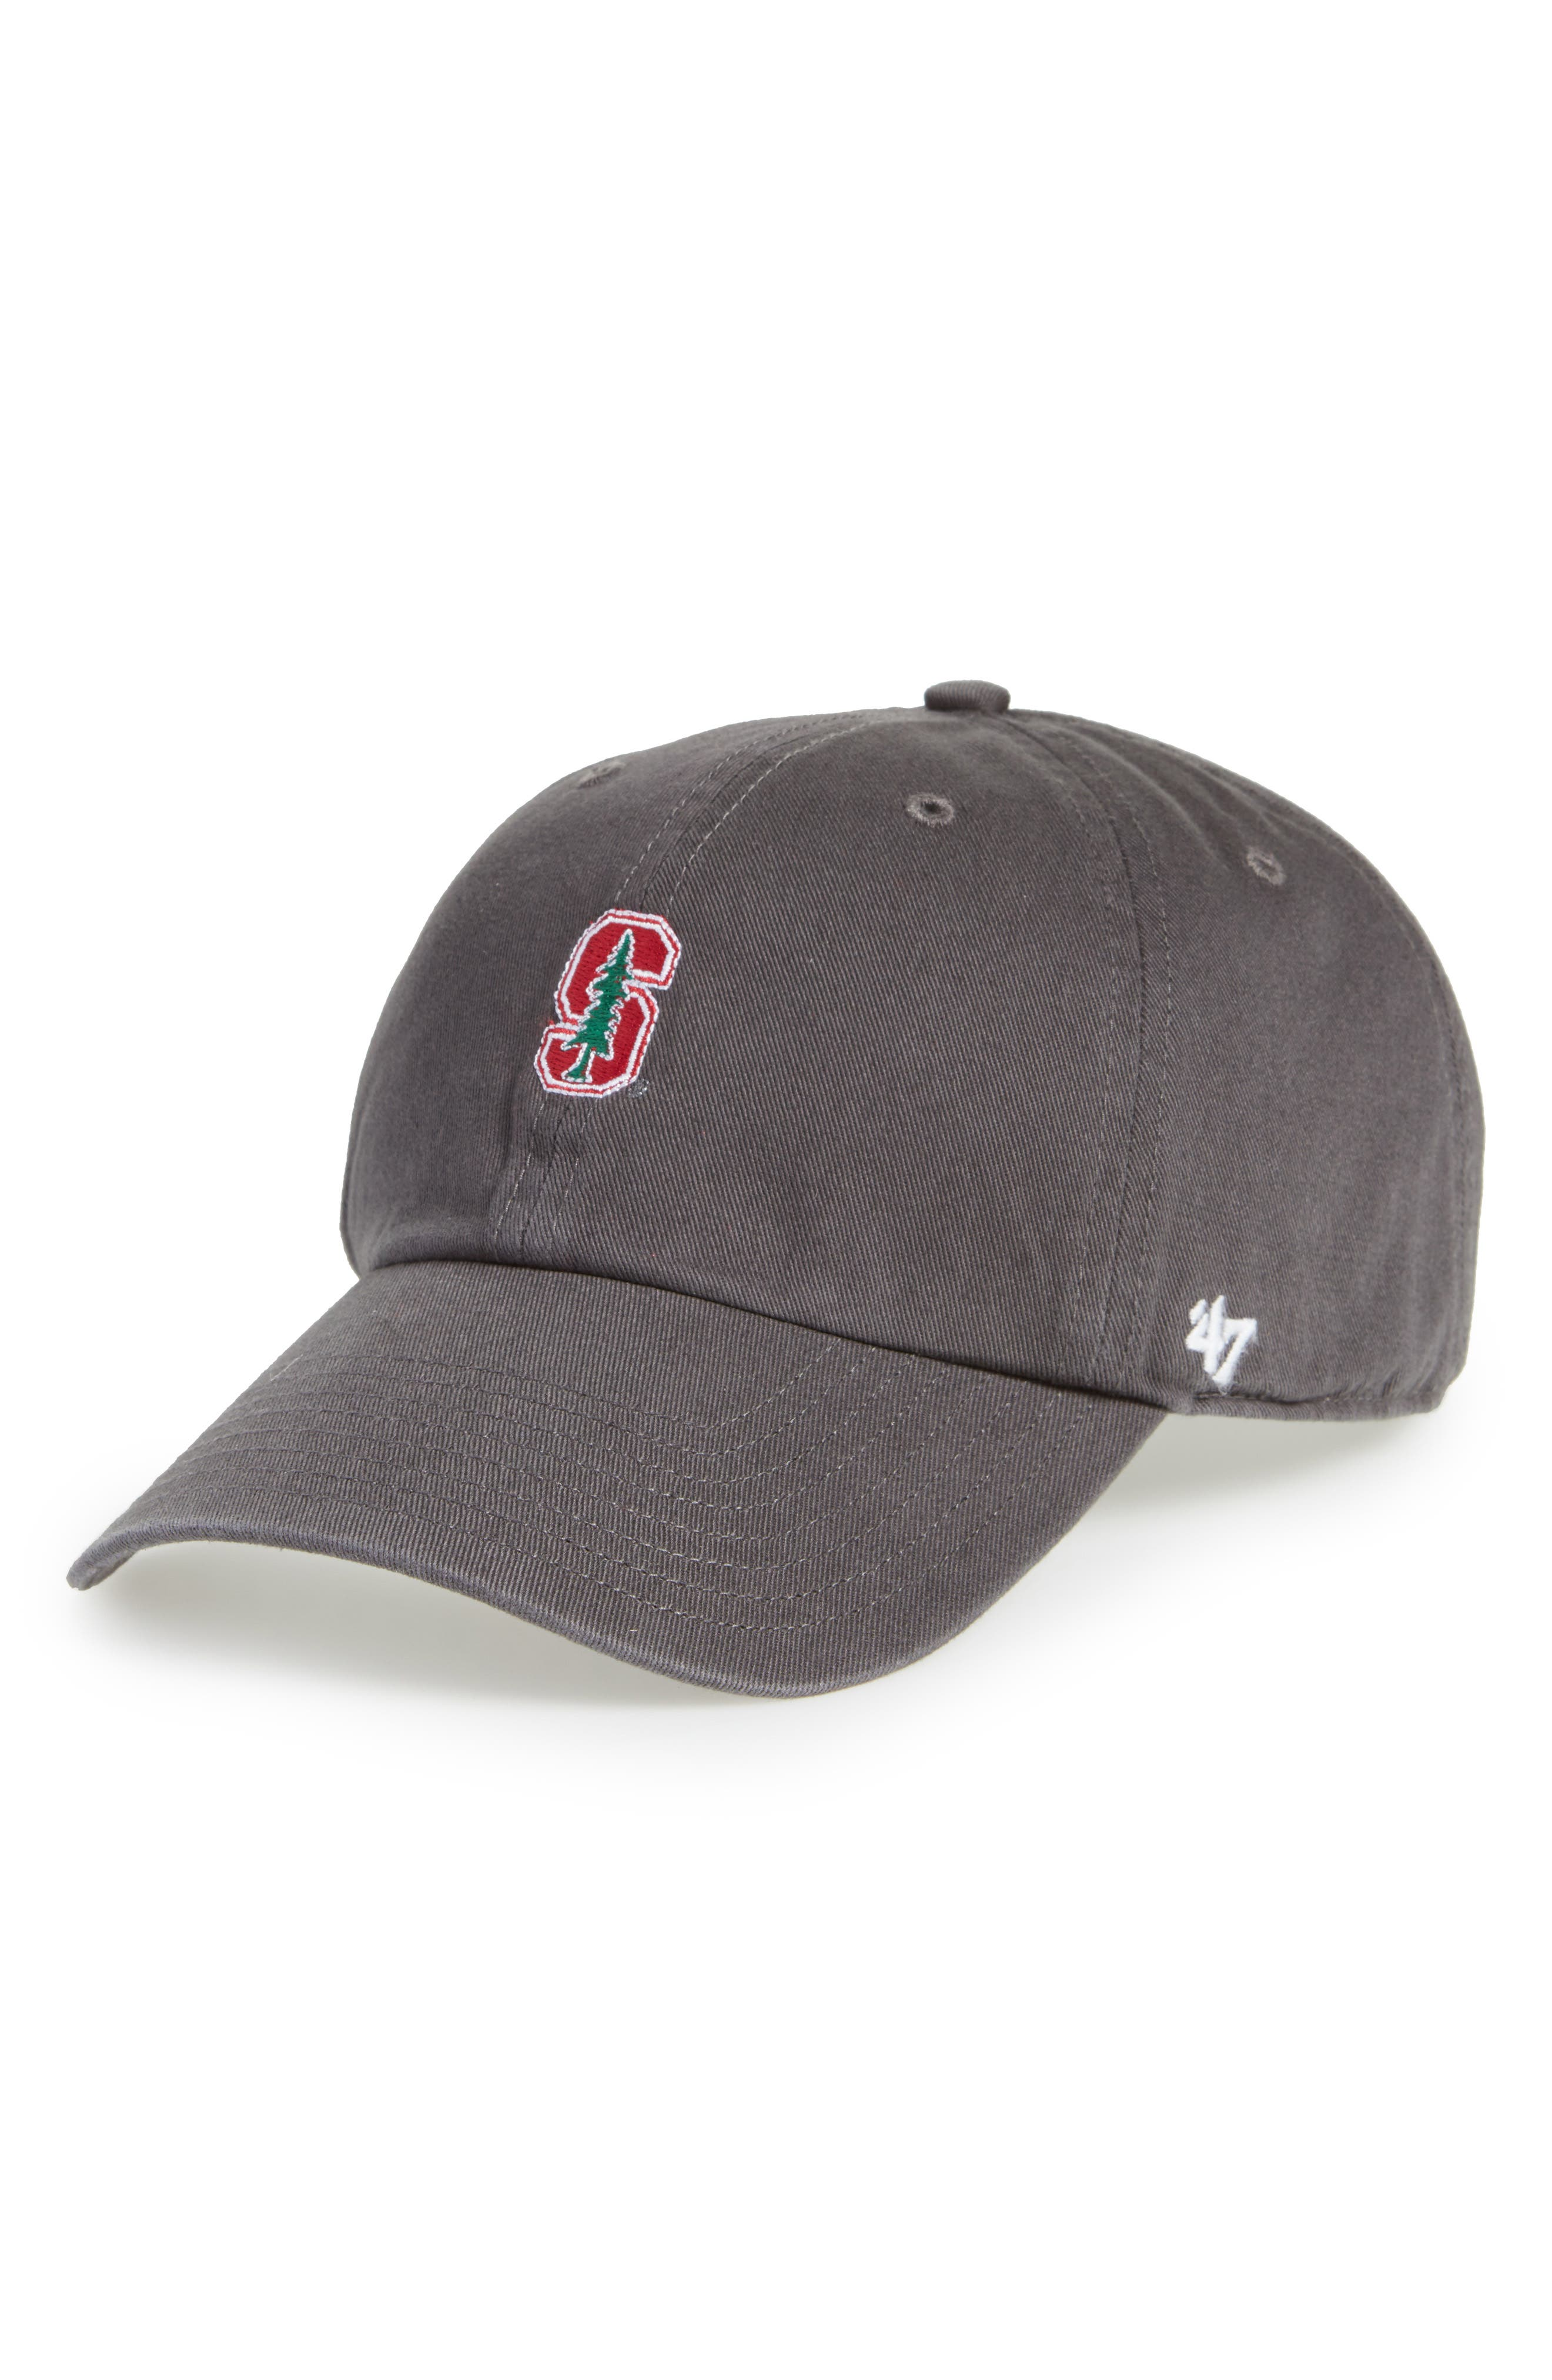 Collegiate Clean-Up Stanford Cardinals Ball Cap,                             Main thumbnail 1, color,                             020